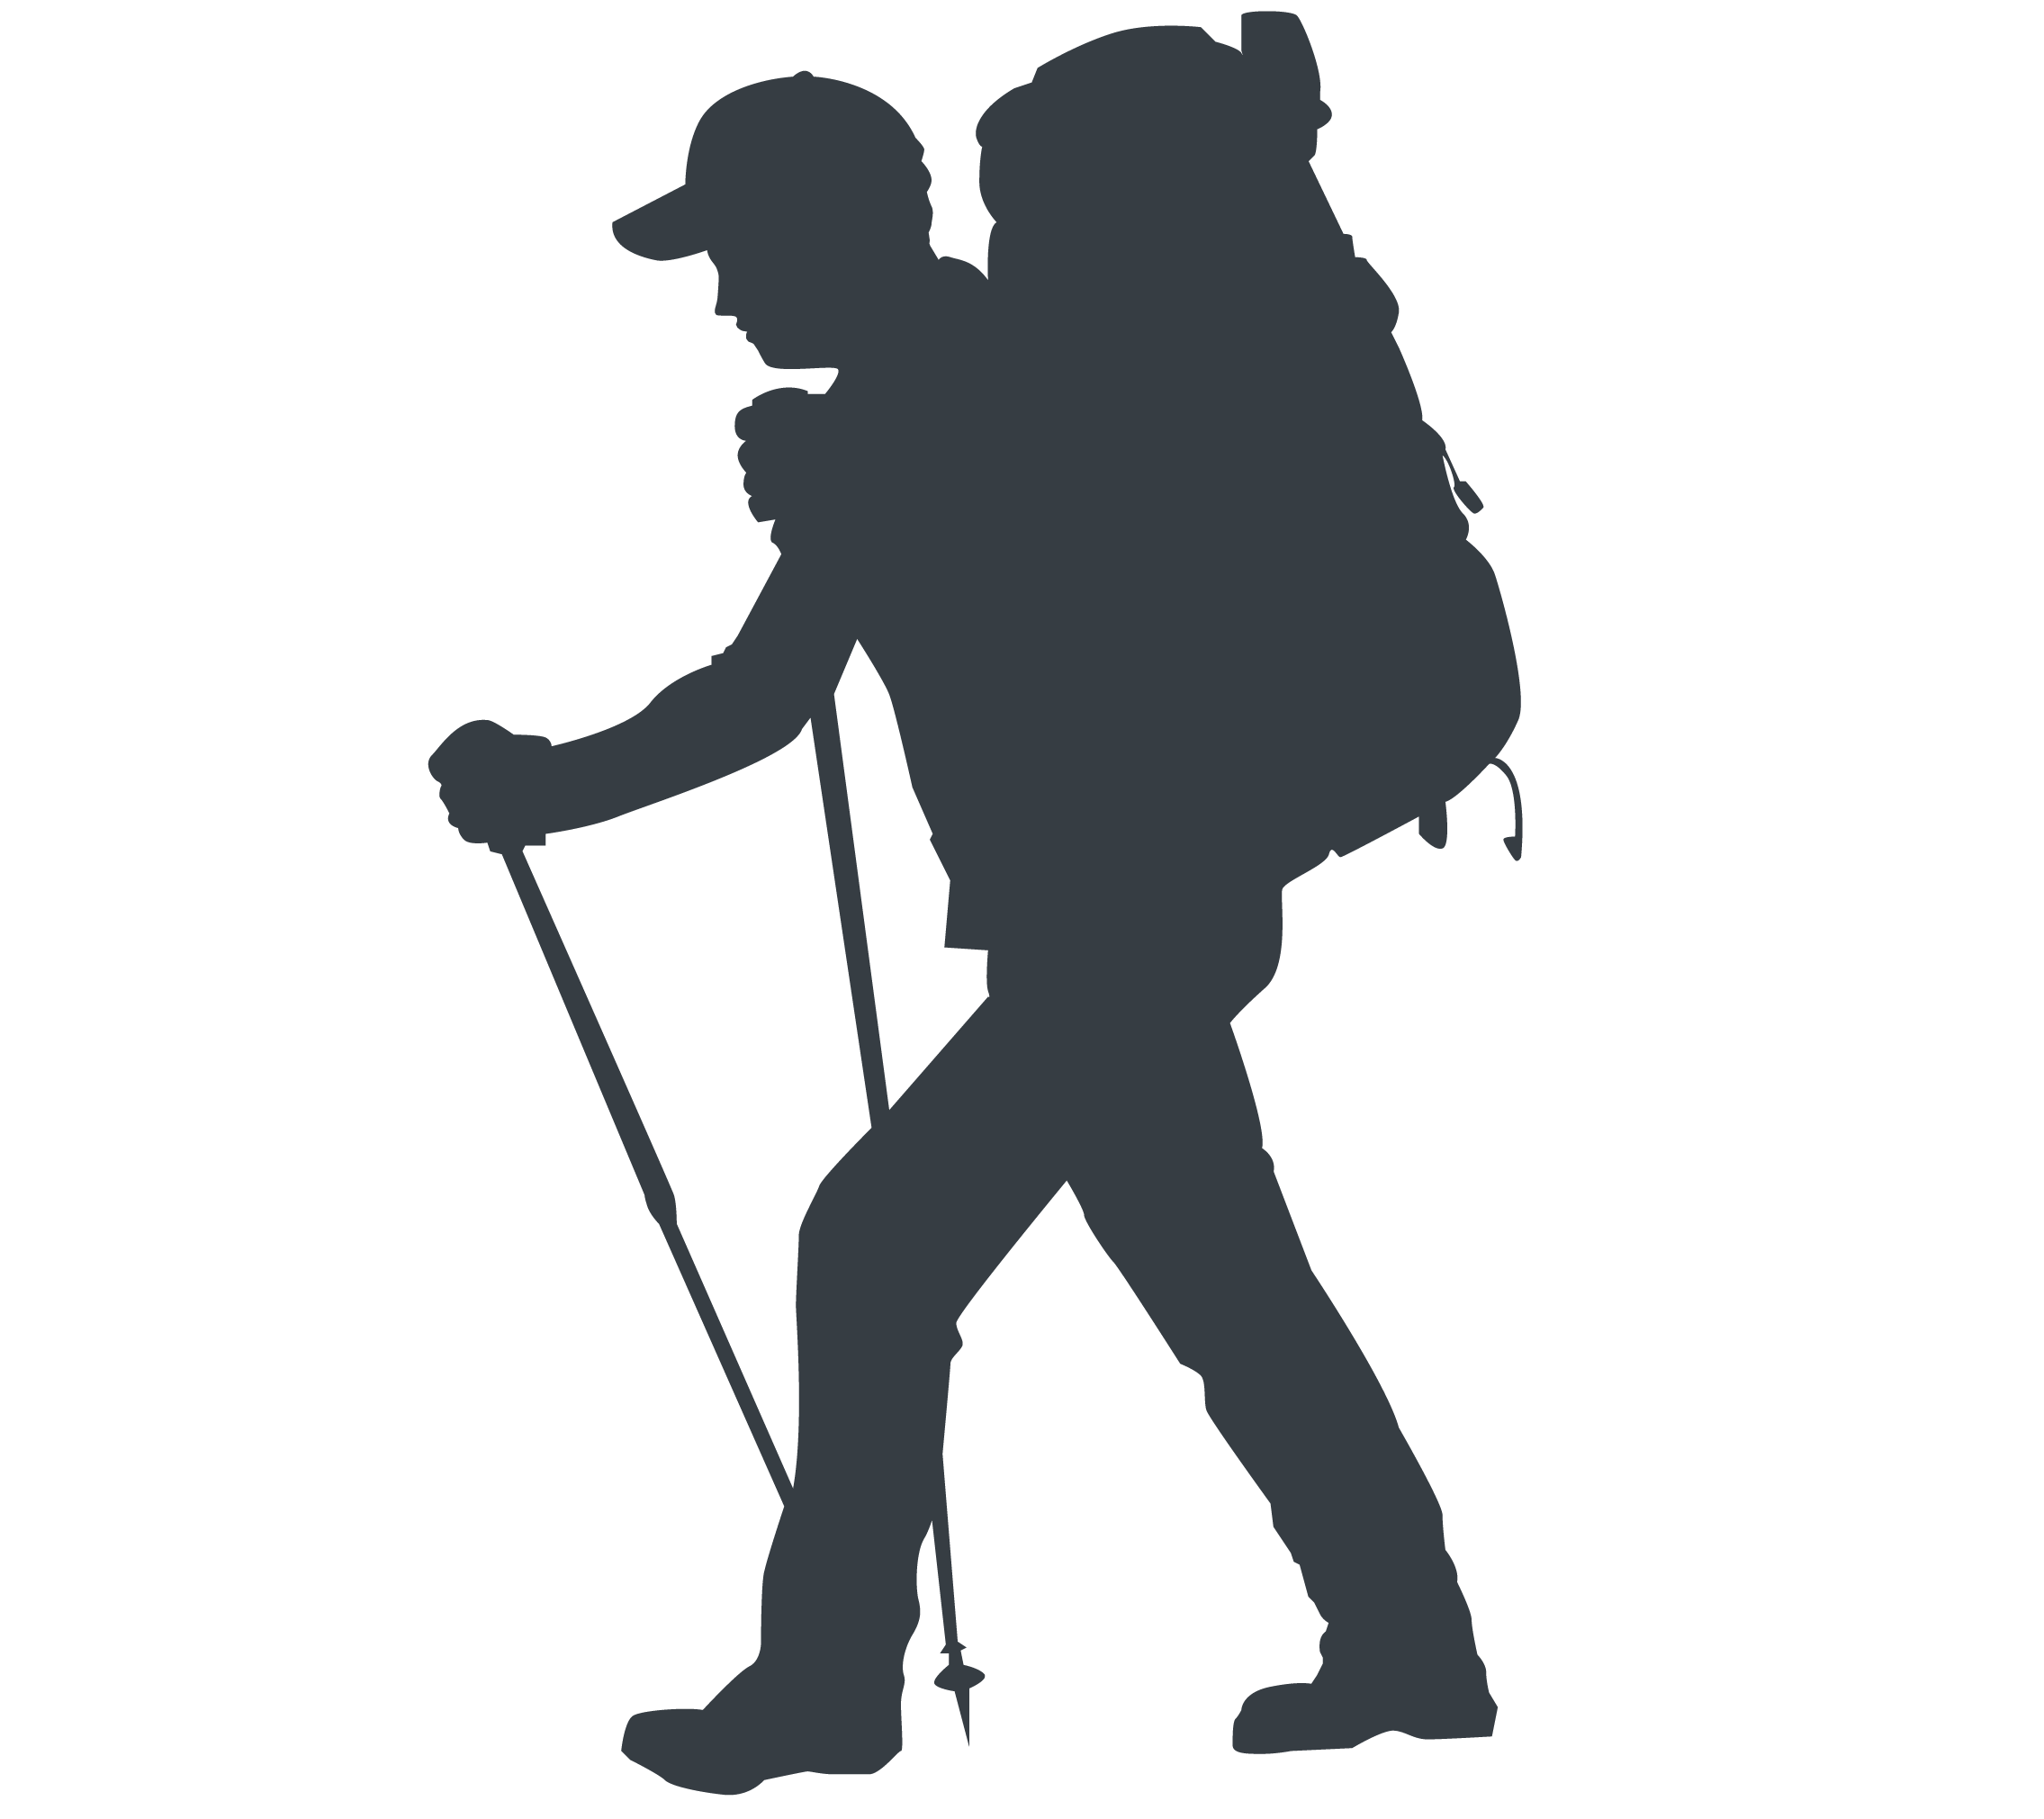 hiking silhouette hiking woman silhouette permanent adhesive outdoor decal hiking silhouette